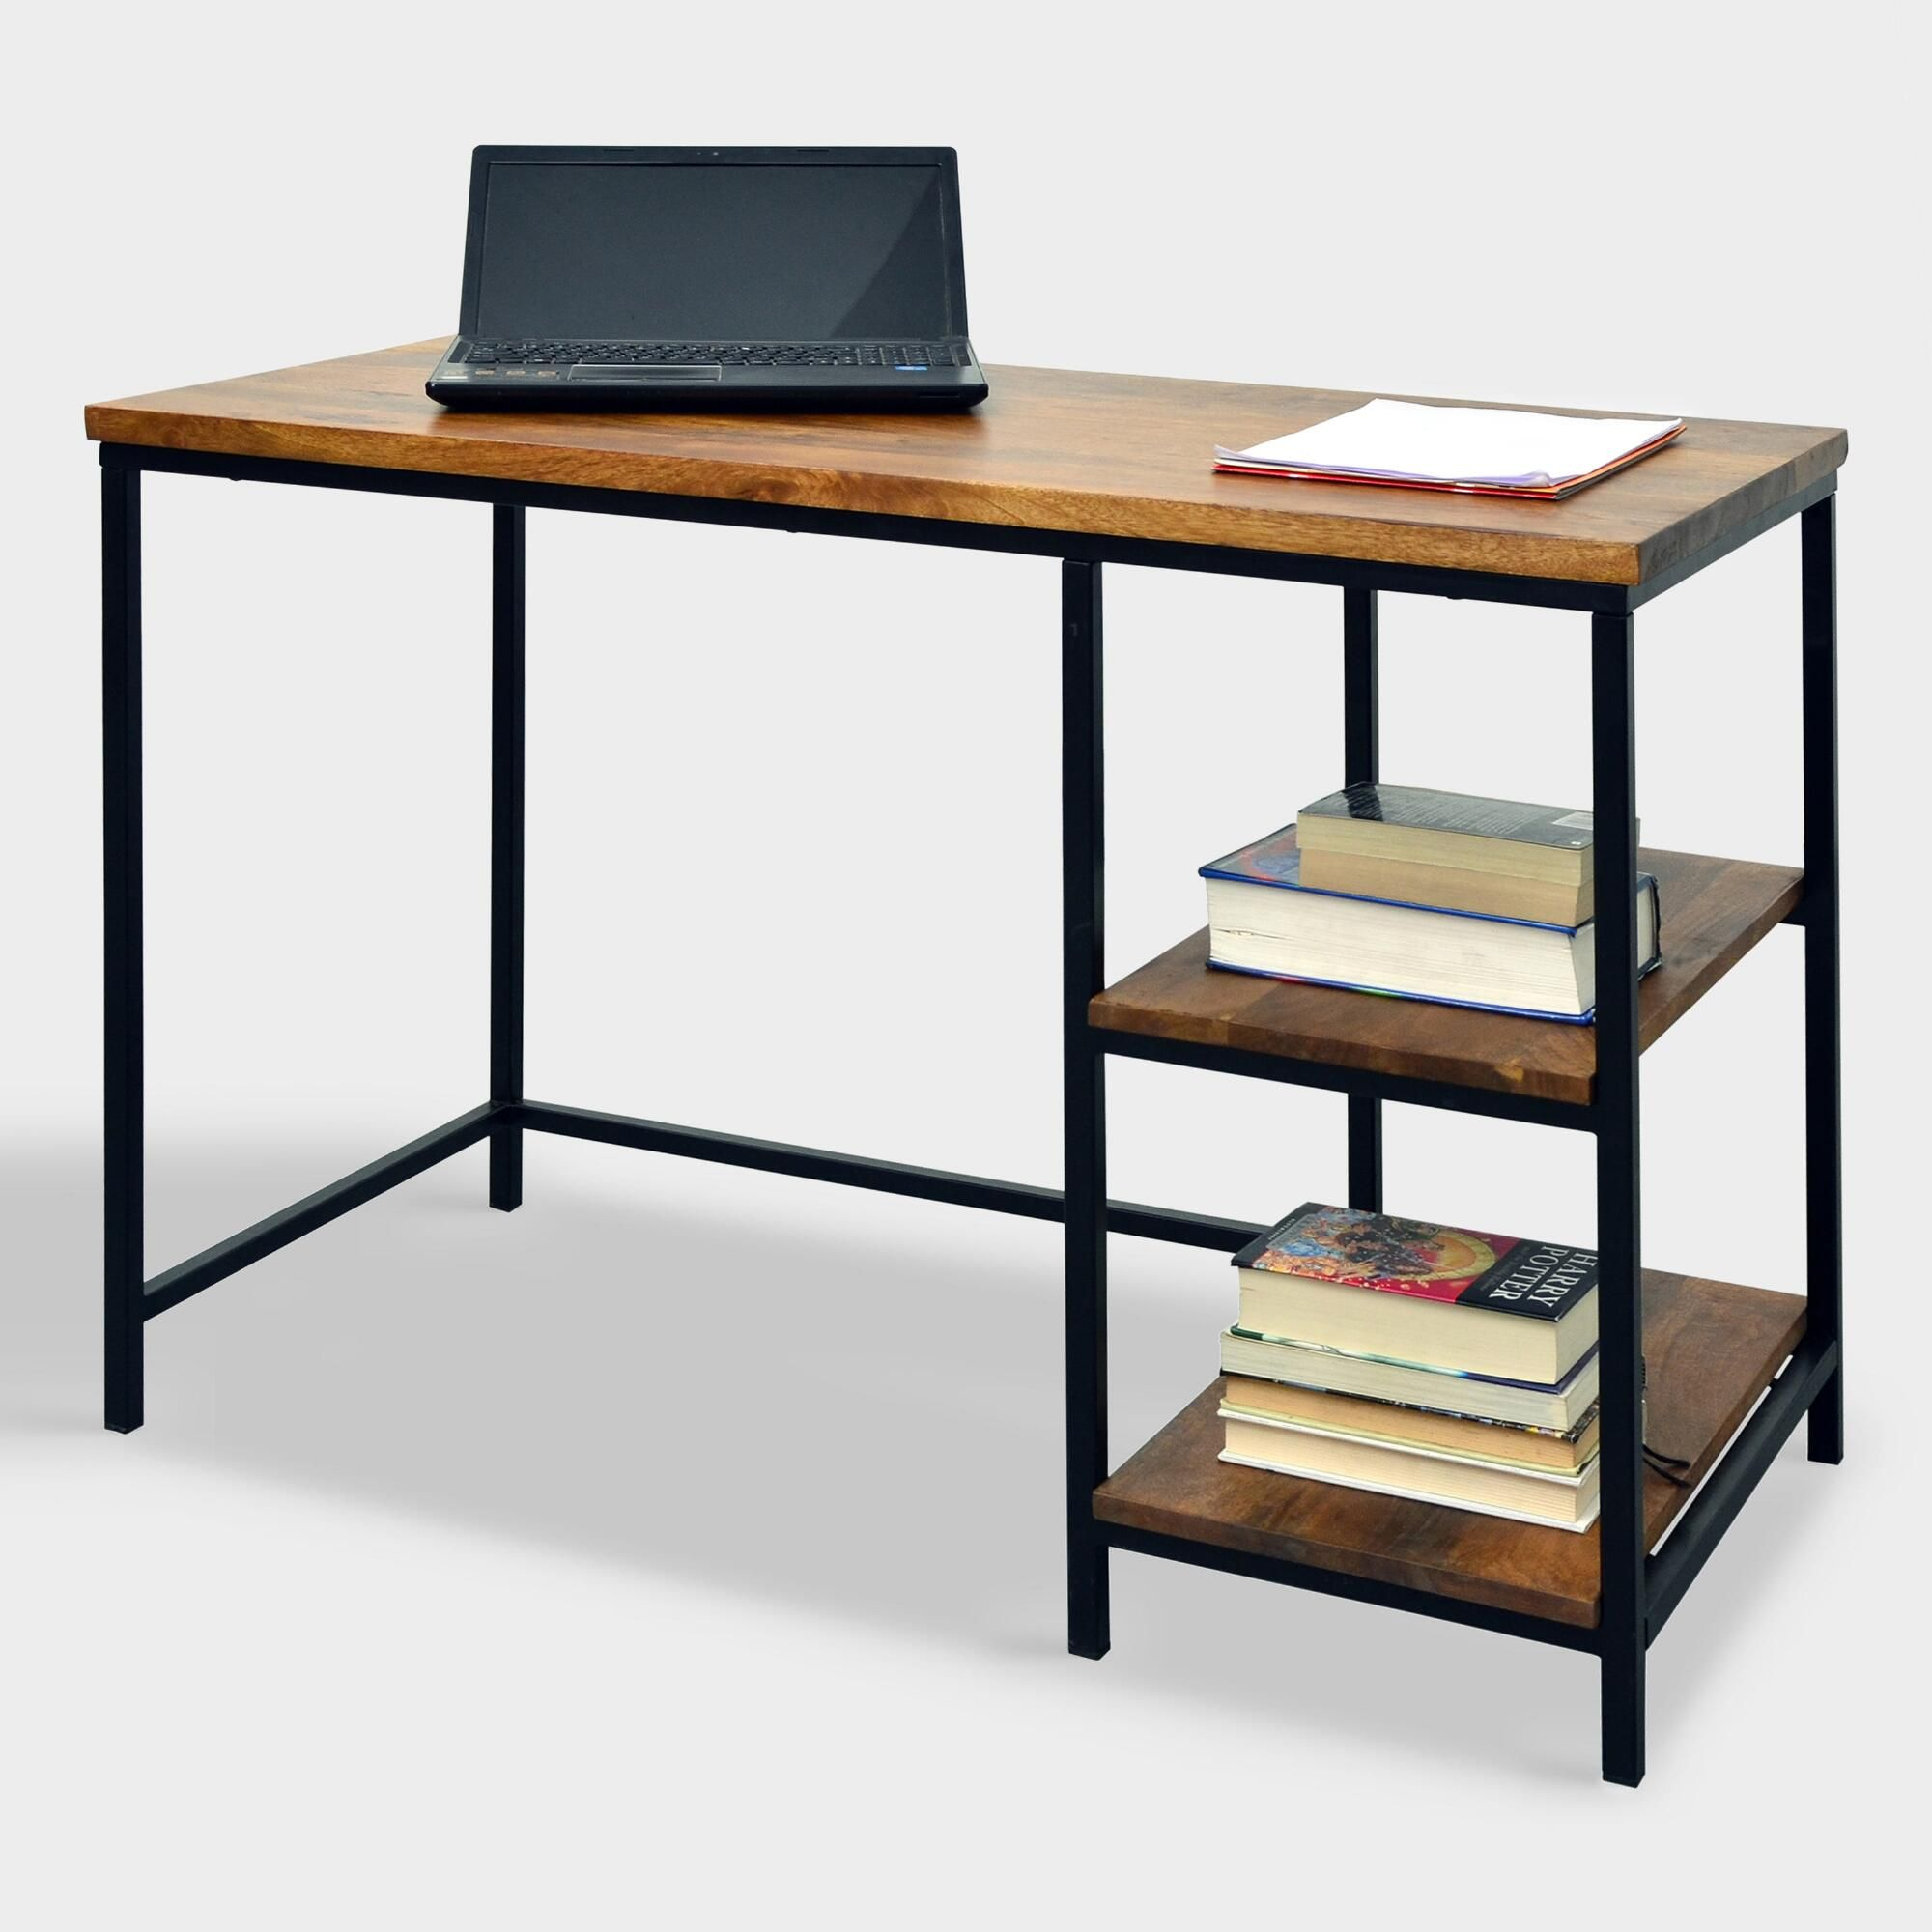 The Clean Simple Design Of Our Contemporary Desk Makes It A Versatile Addition To Any Work Ar Cheap Office Furniture Wood And Metal Desk Home Office Furniture